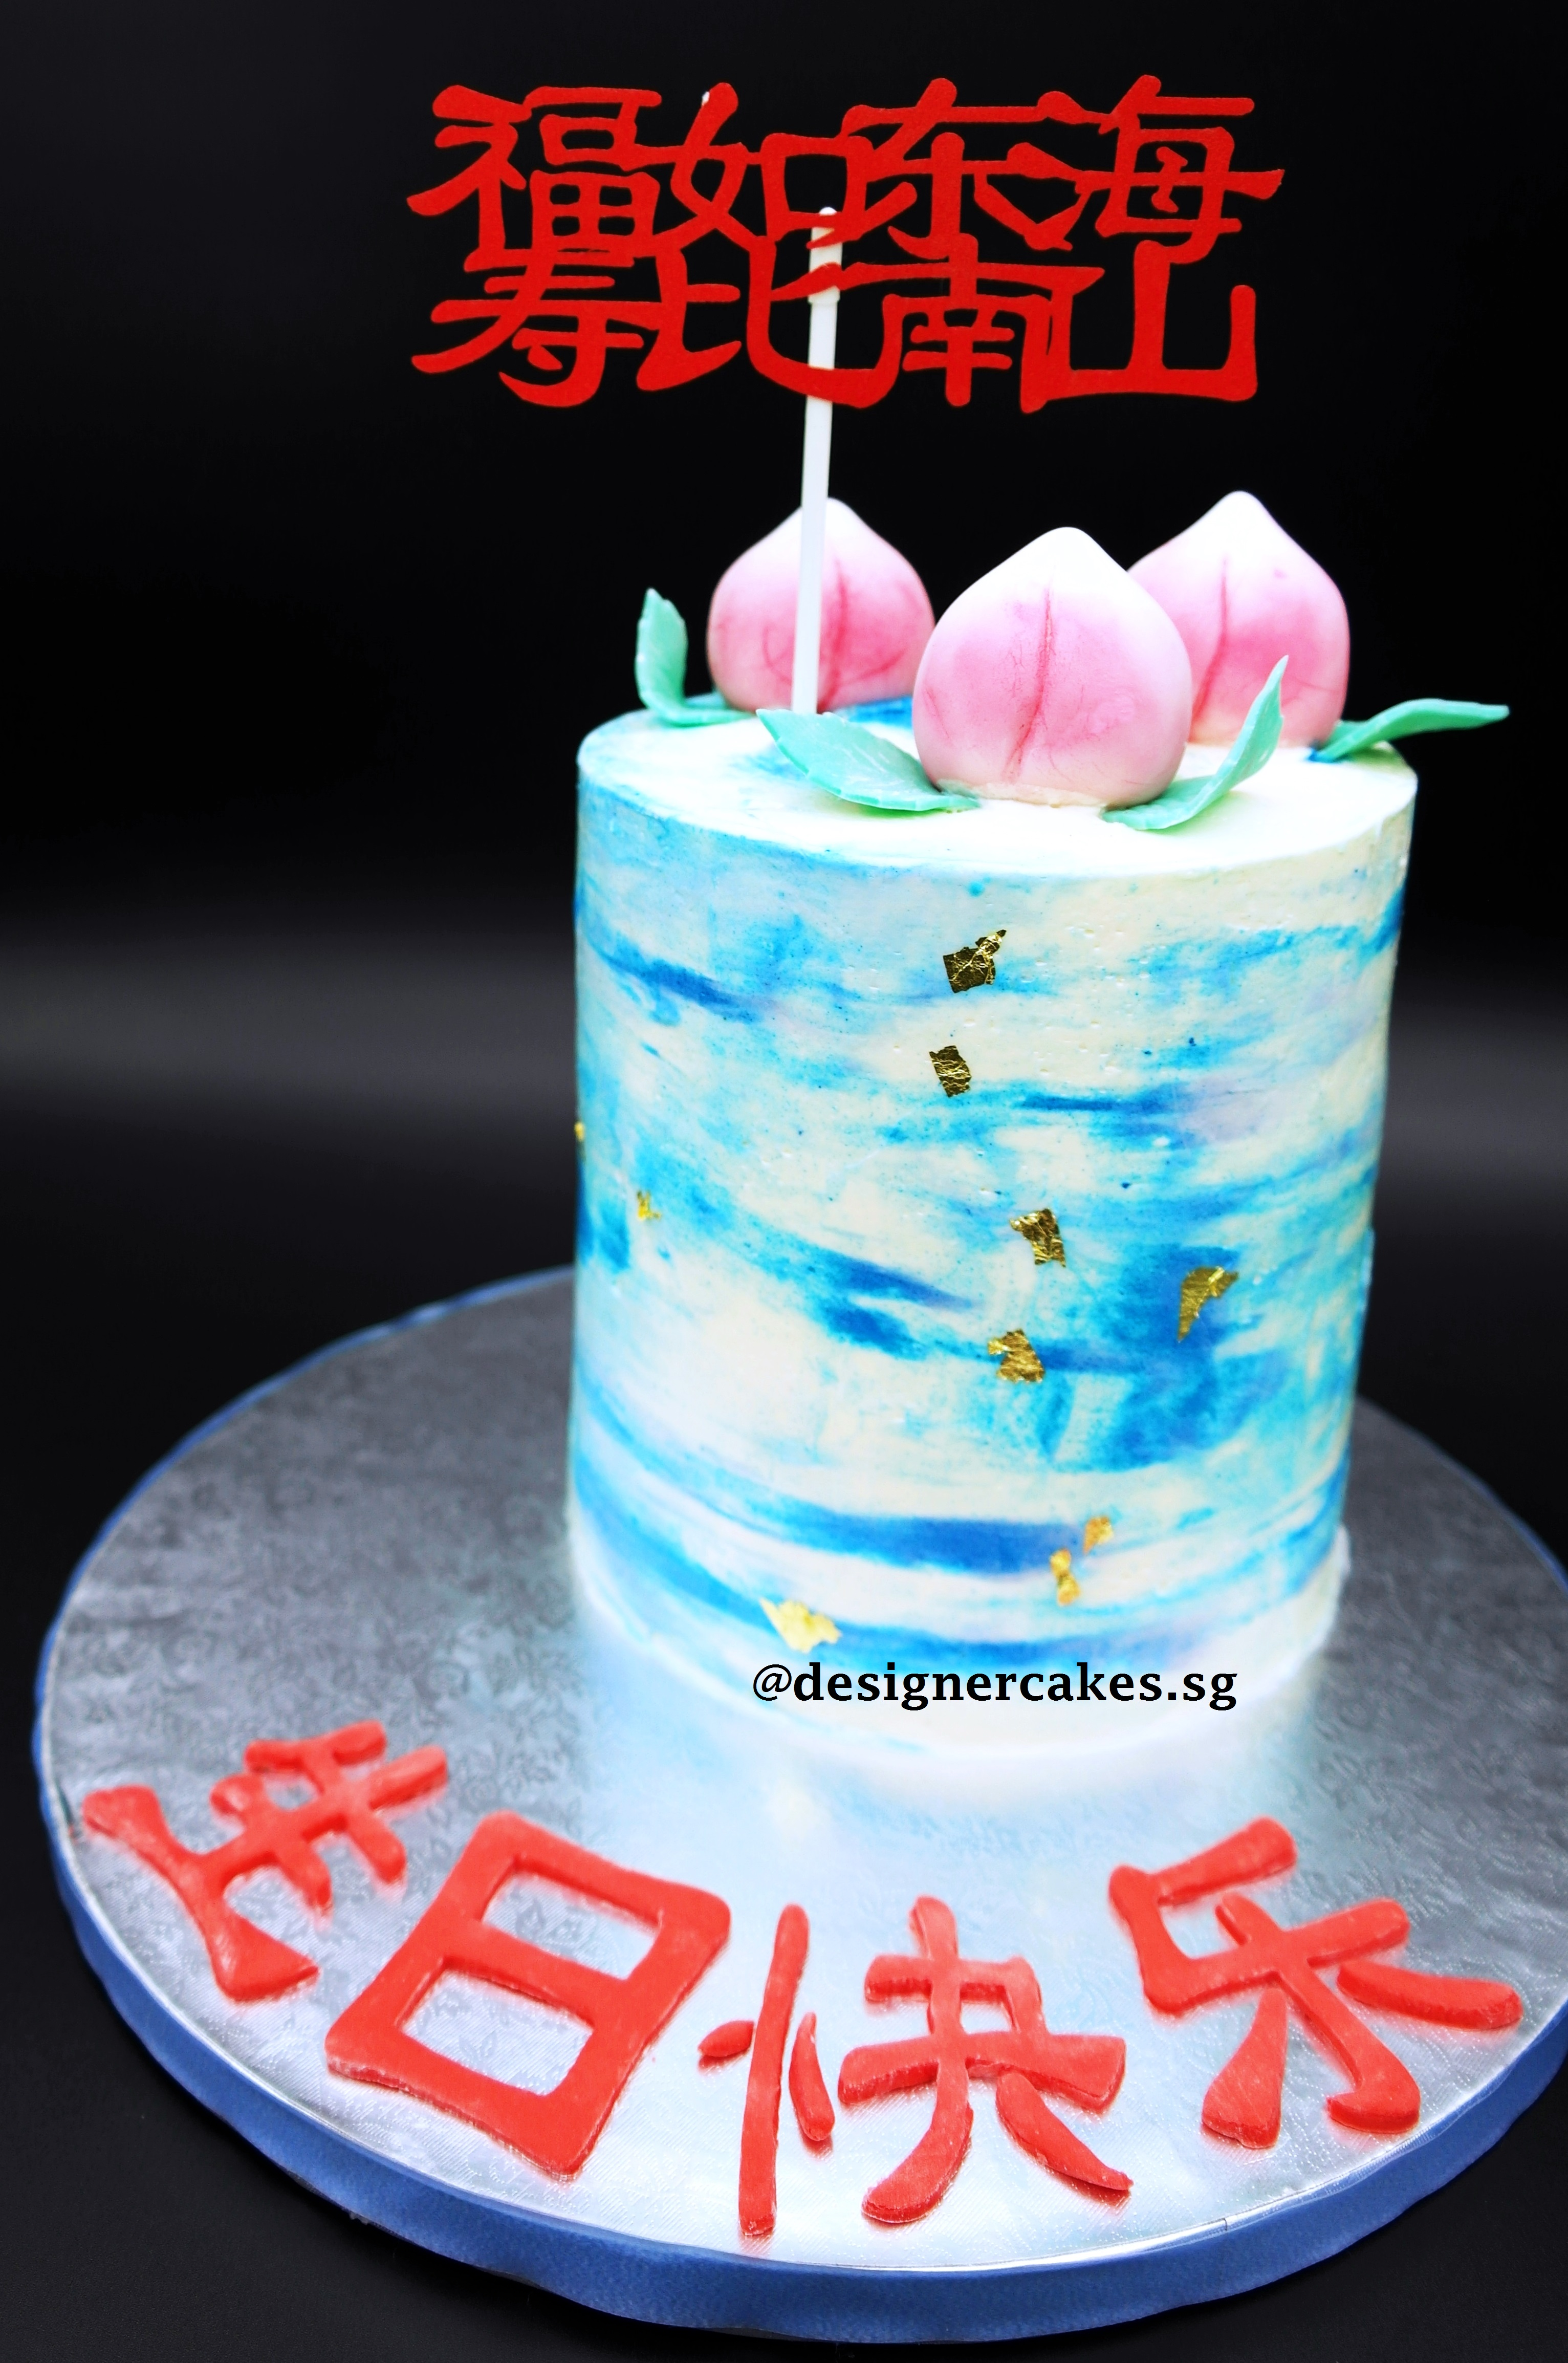 Marbled Blue White Cream Cake with Gold Leaf Mini Shou Tao Buns